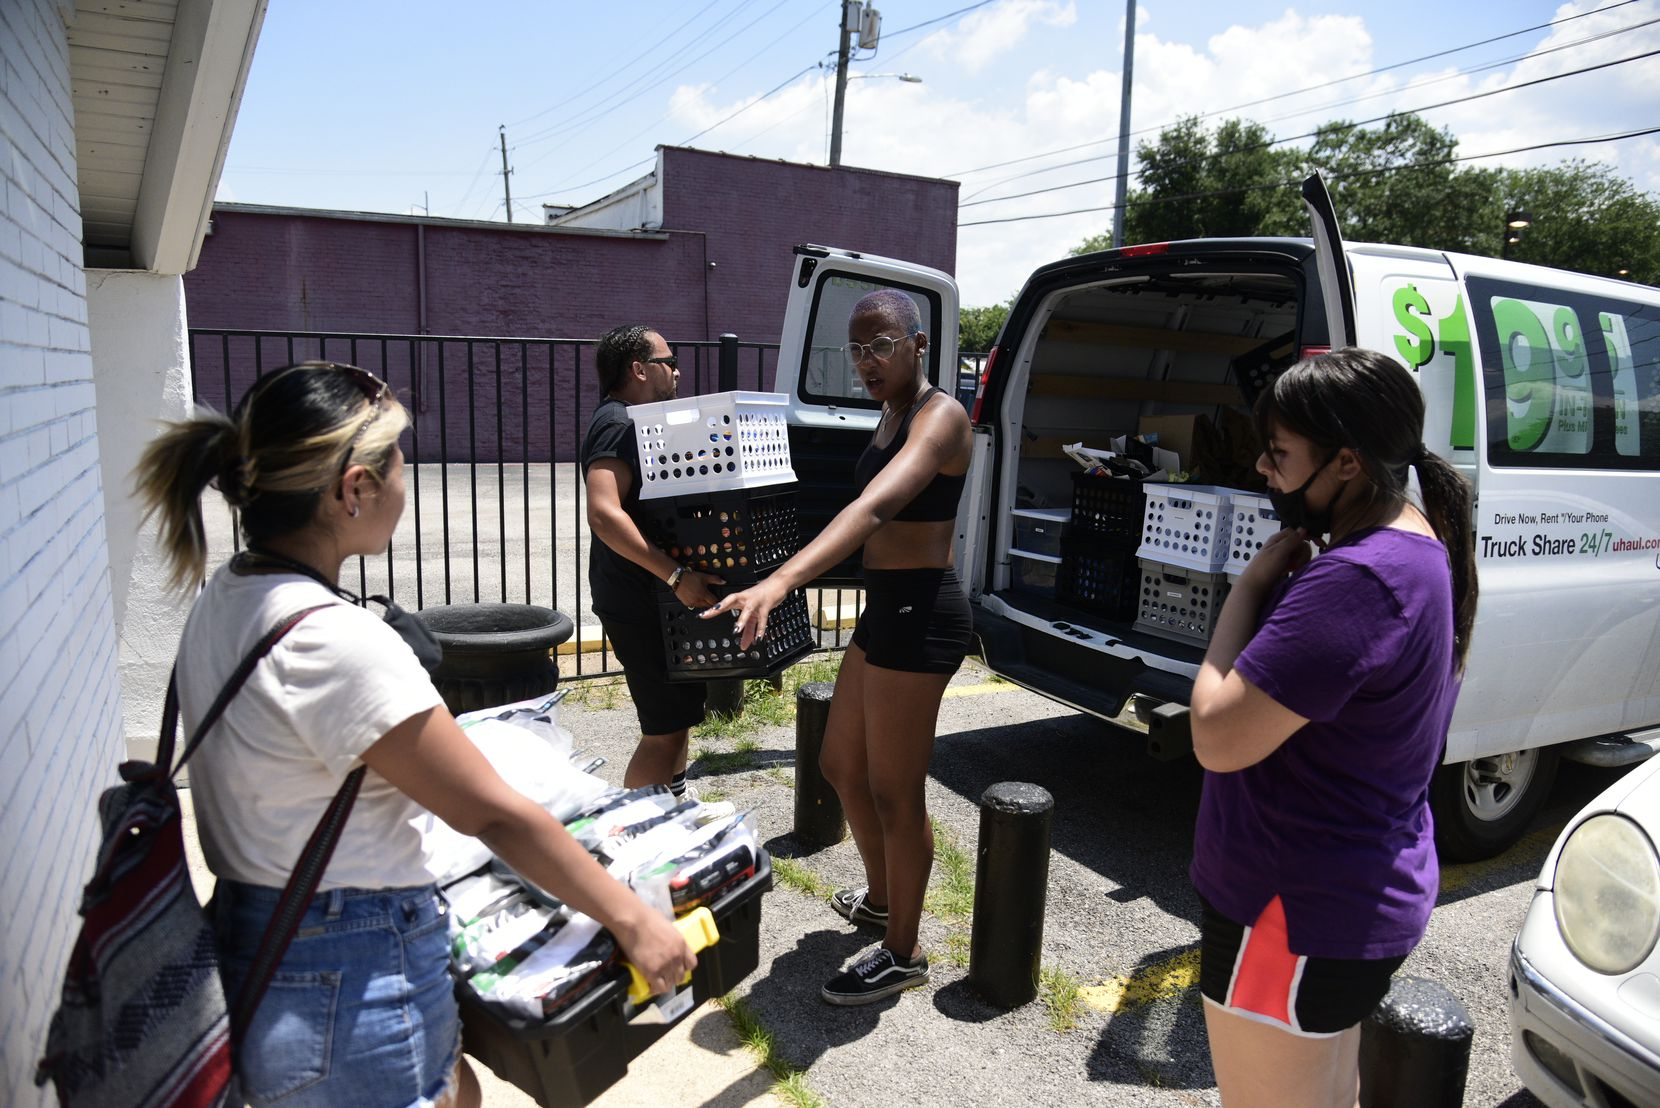 Patrick Averhart, left, and Danielle Carty load a supply van and direct volunteers at Sunny South Nutrition in South Dallas before supply distribution for Feed the People Dallas, a mutual-aid organization, on June 17, 2021.